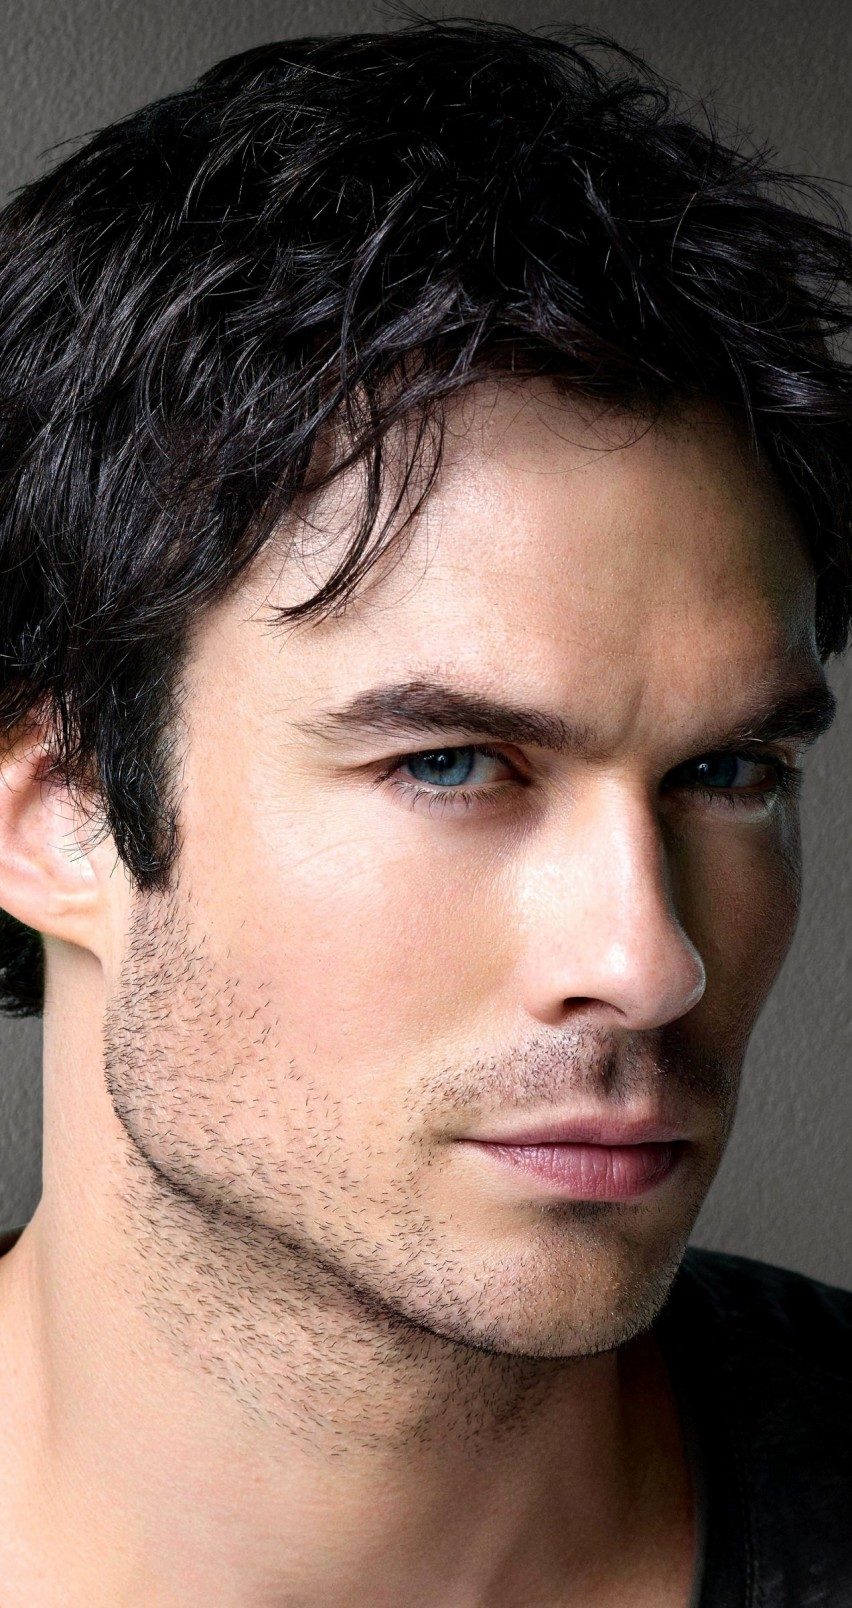 Ian Somerhalder Wallpaper for Apple iPhone 6 / 6s